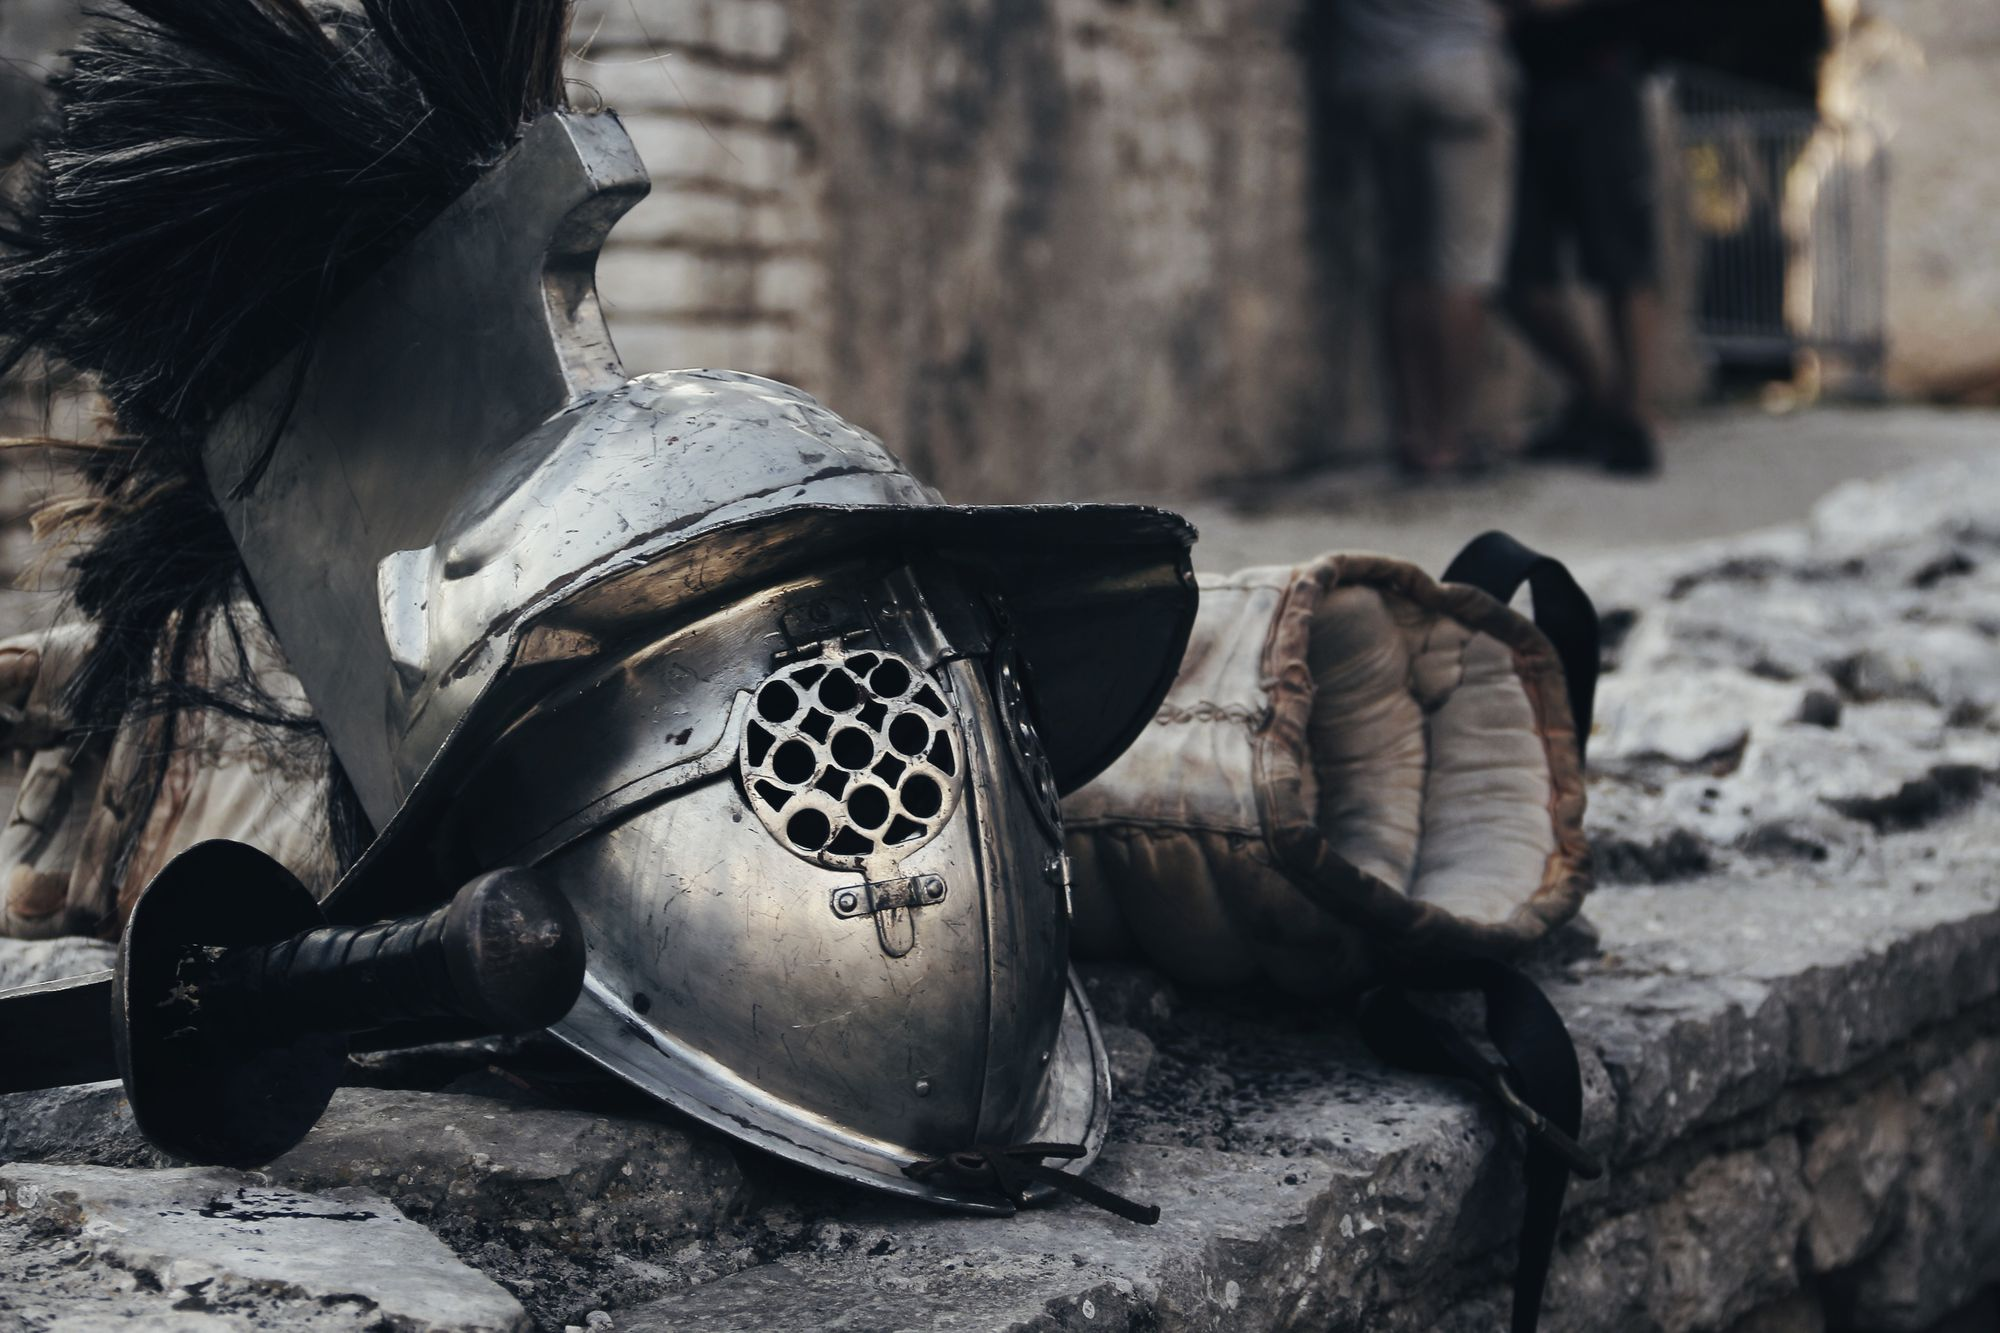 Helmet of a knight on the ground